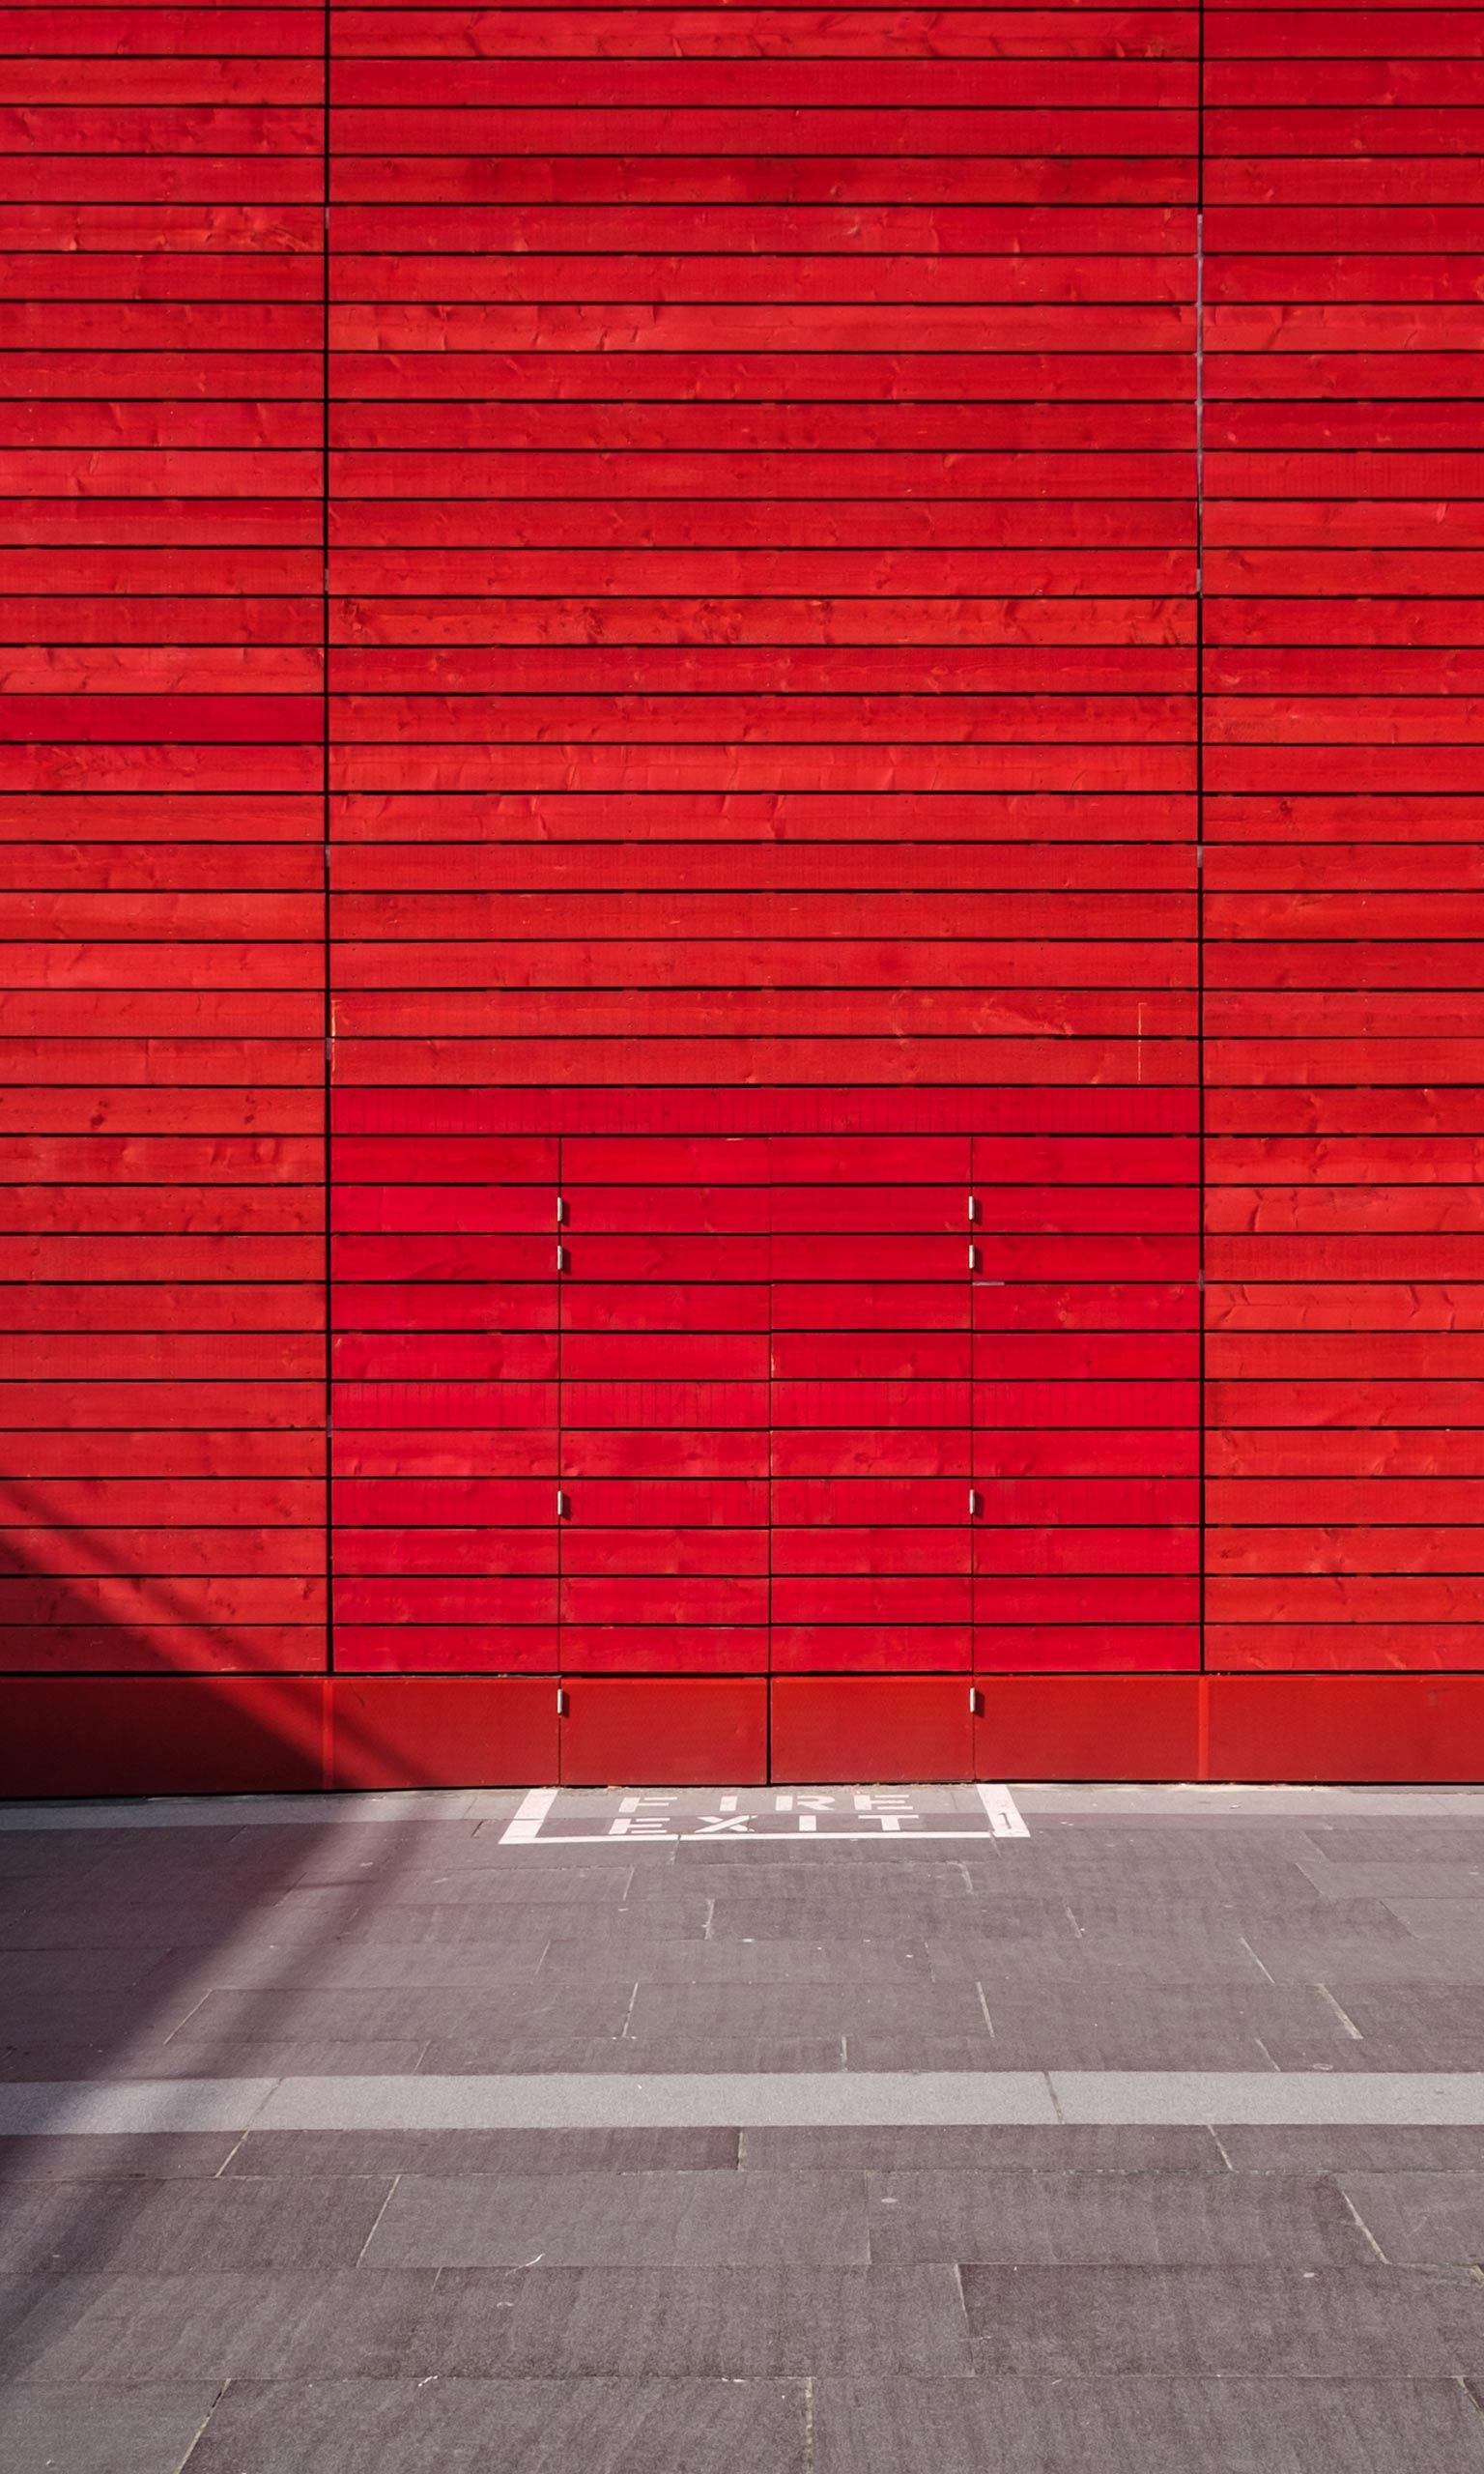 fire exit mobile wallpaper | miniwallist